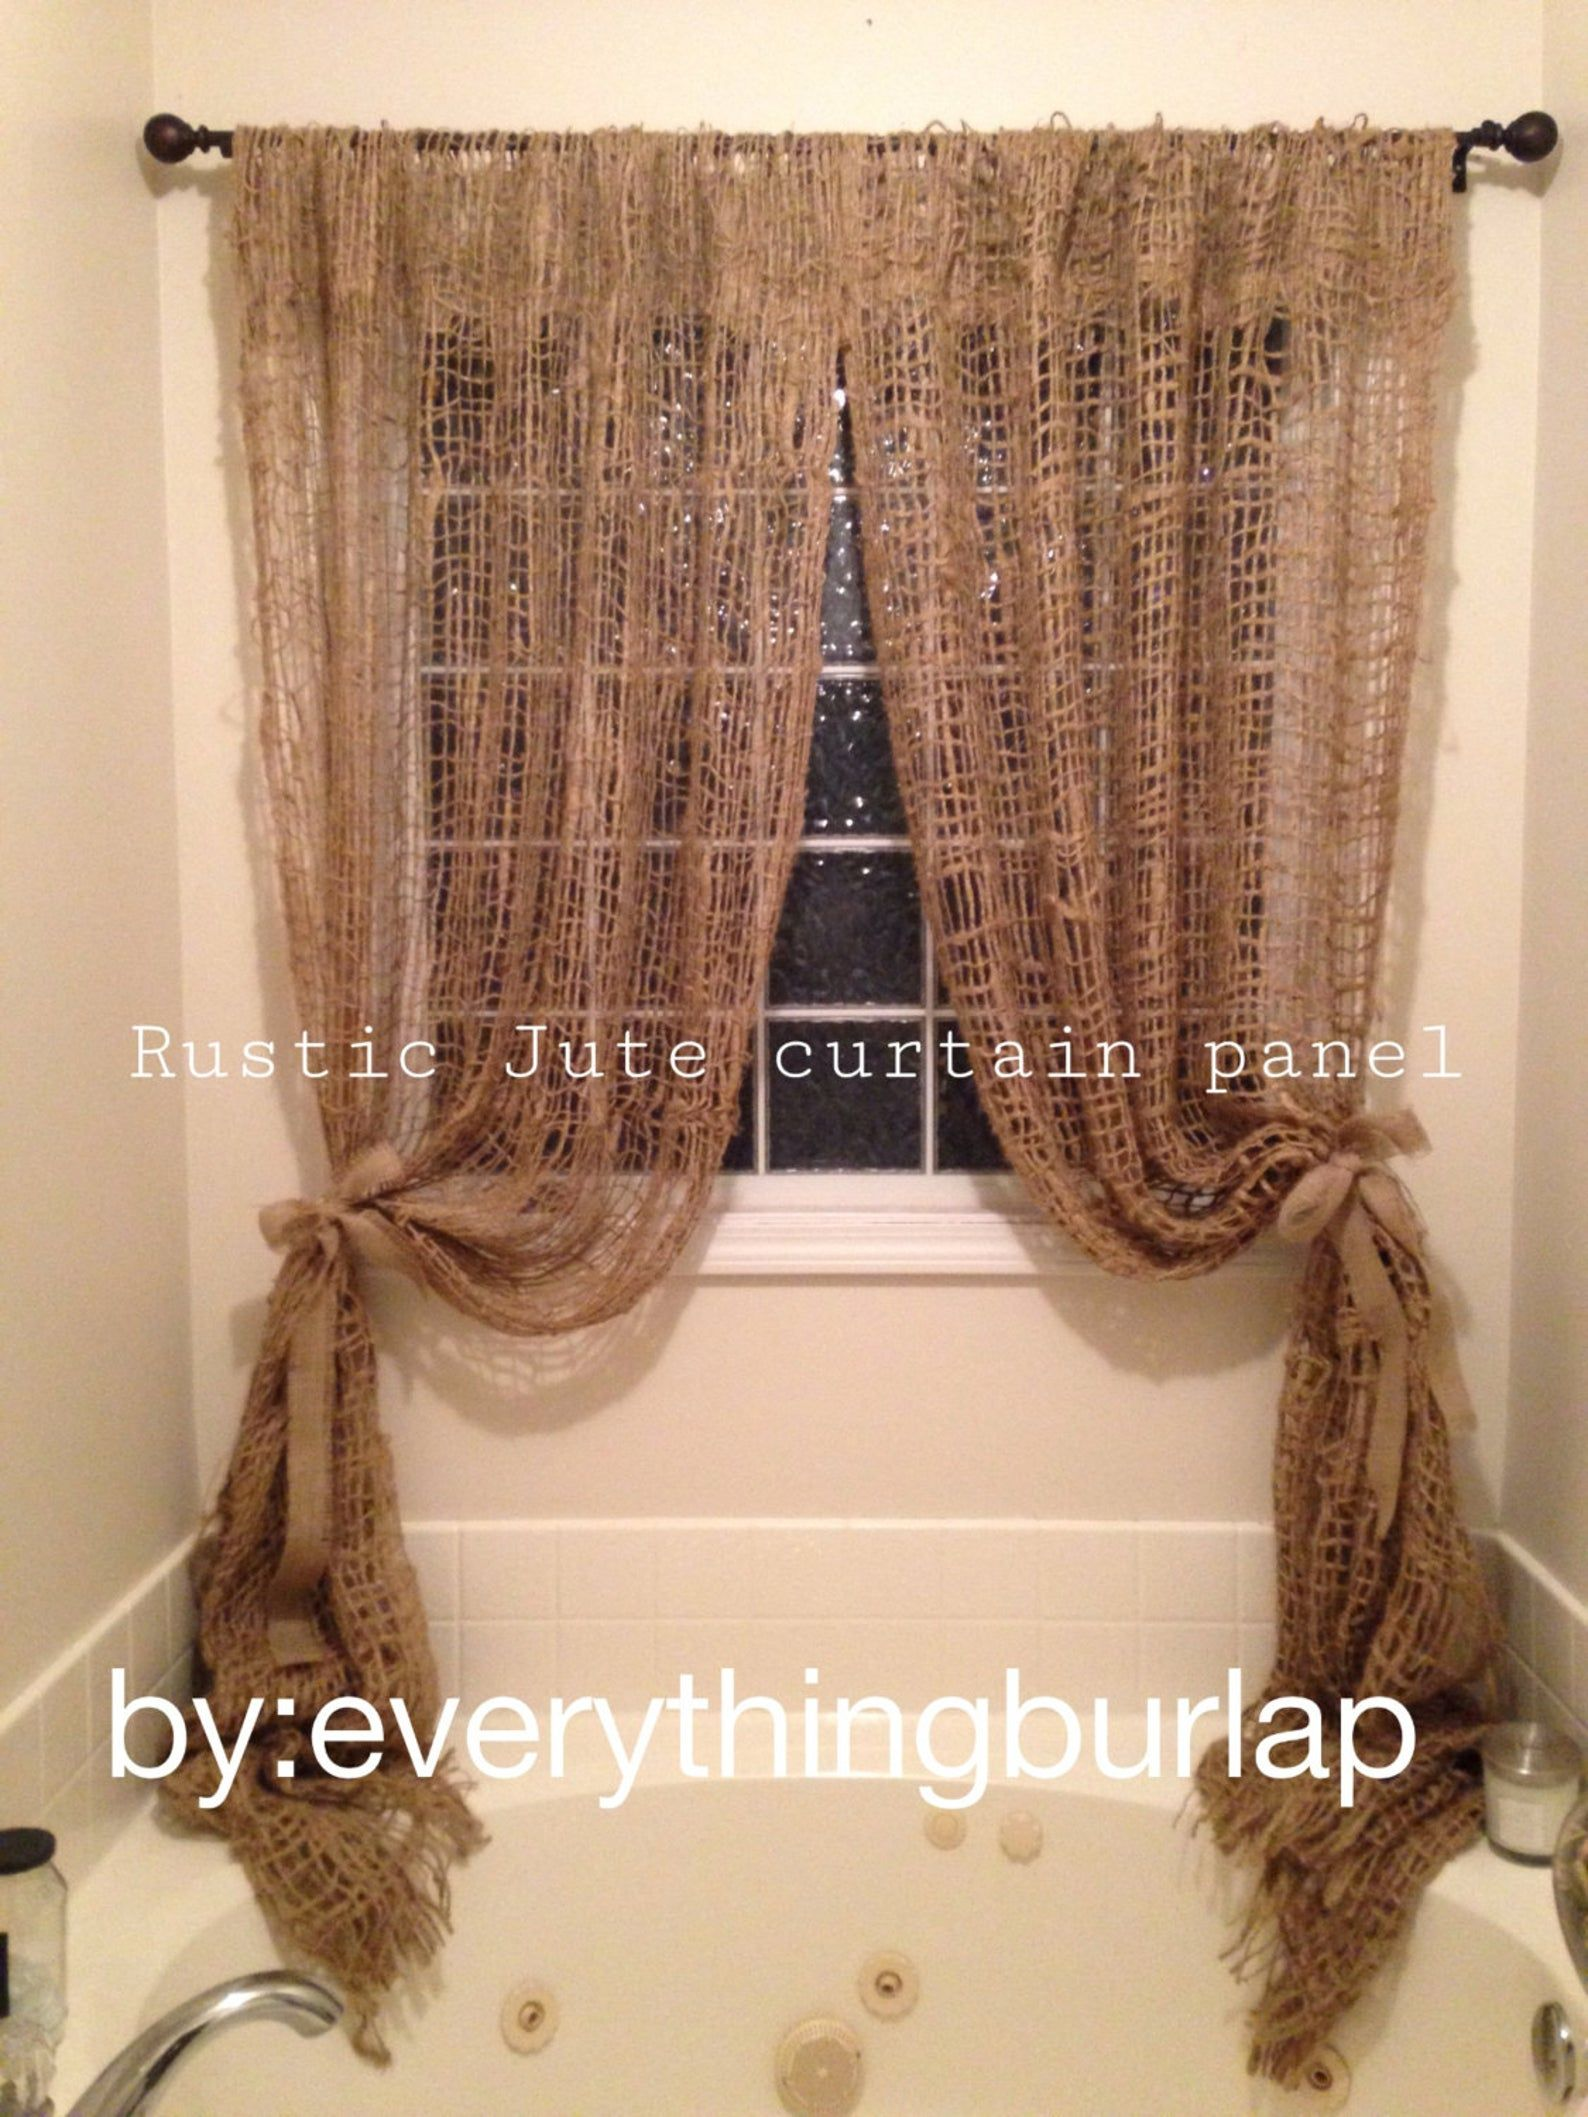 Jute Curtain Panel Etsy In 2020 Panel Curtains Curtains Paneling